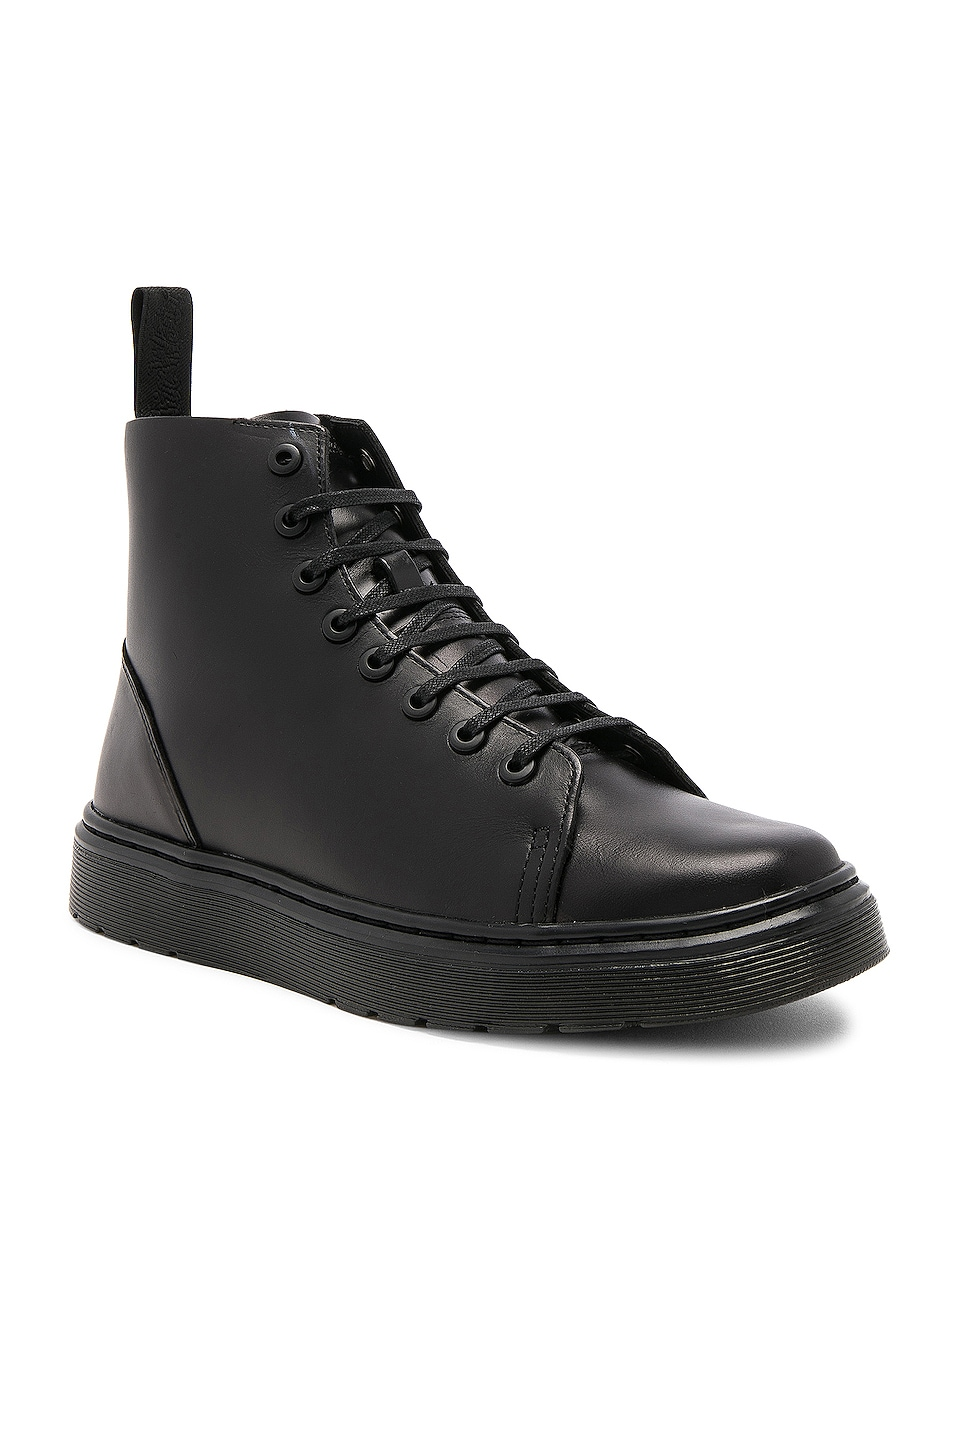 Dr. Martens Talib 8 Eye Leather Boots in . upbjX